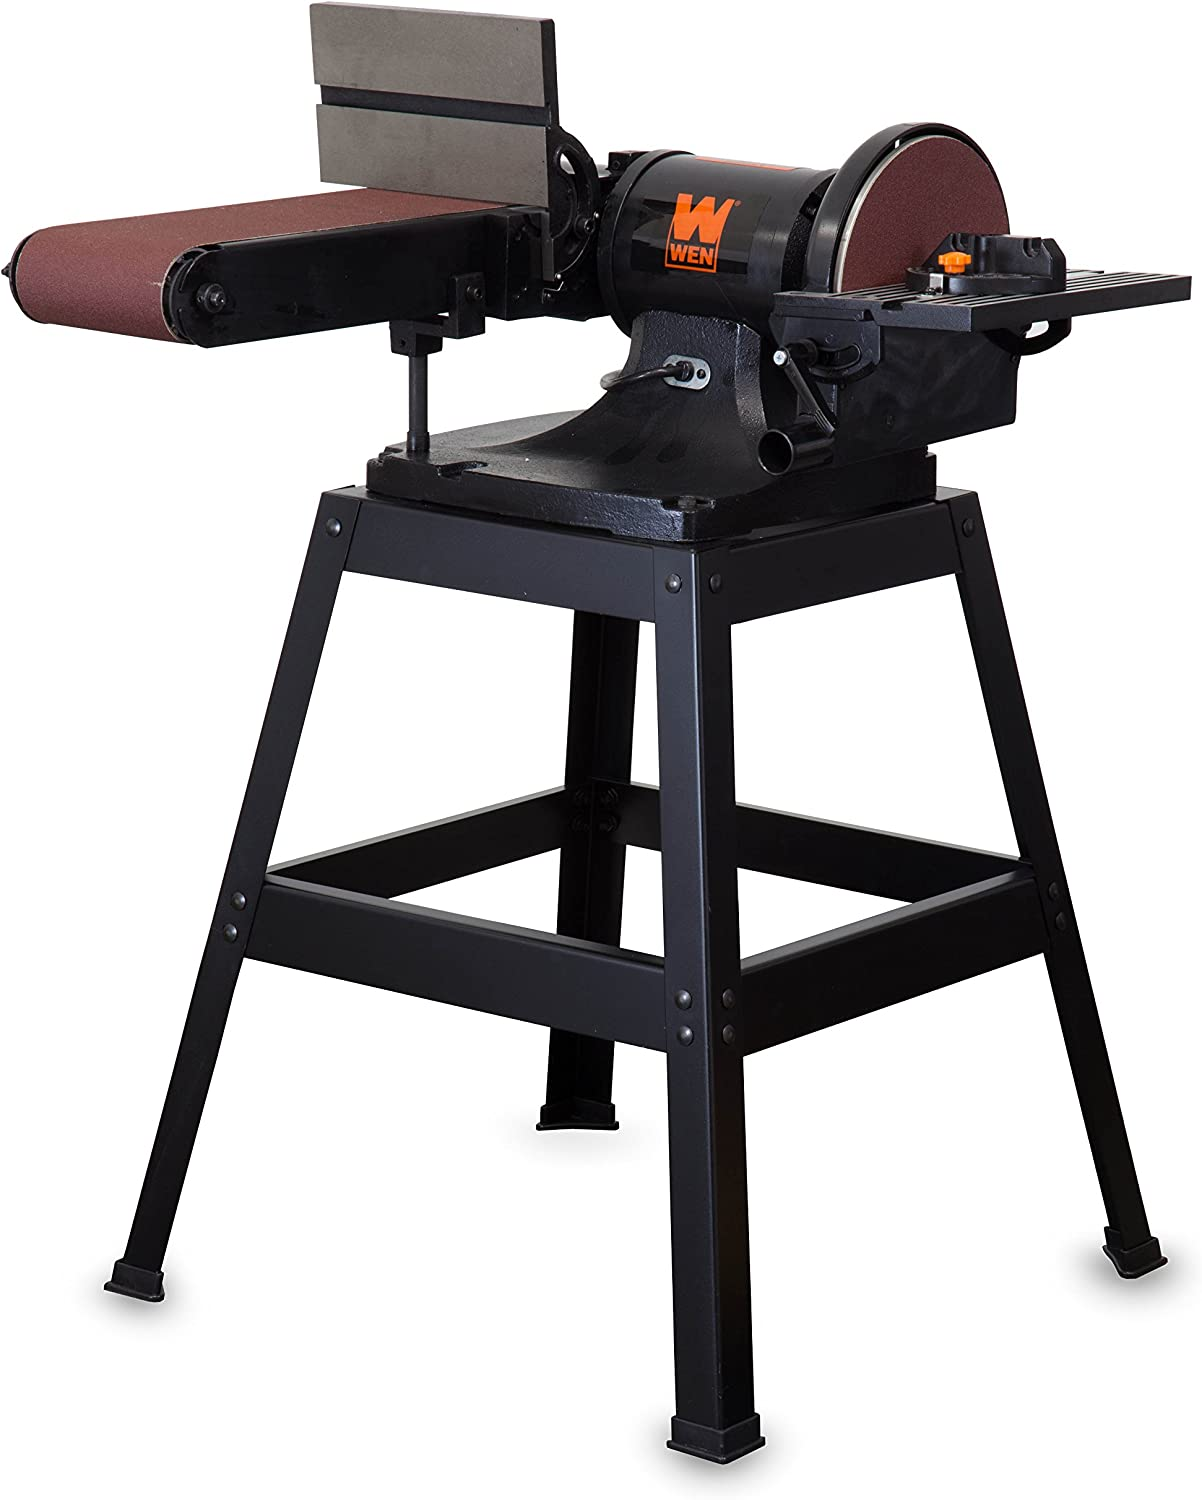 WEN 6508 6 x 48 in. Belt 9 Sander with Disc Stand Excellence and Max 82% OFF